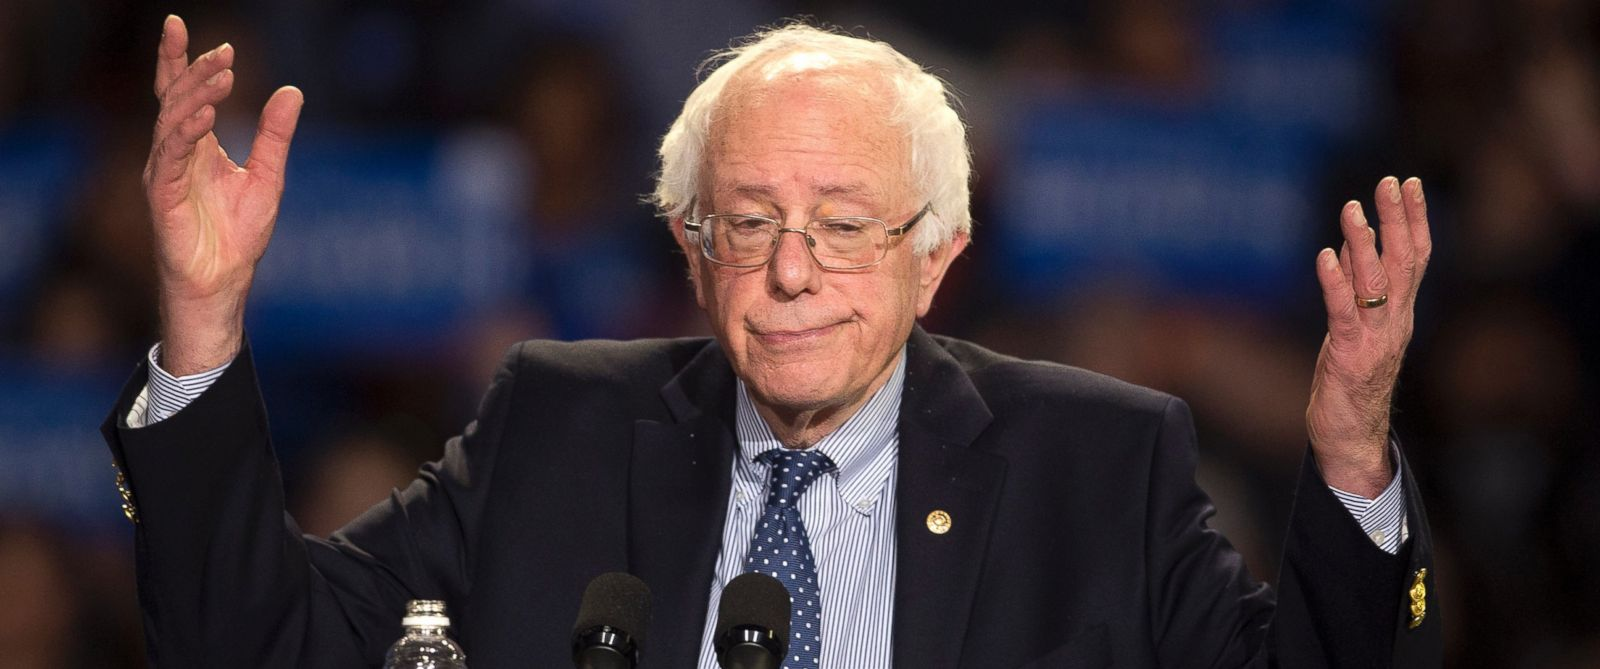 Bernie's 1% Membership Isn't Hypocrisy, It's Demagoguery